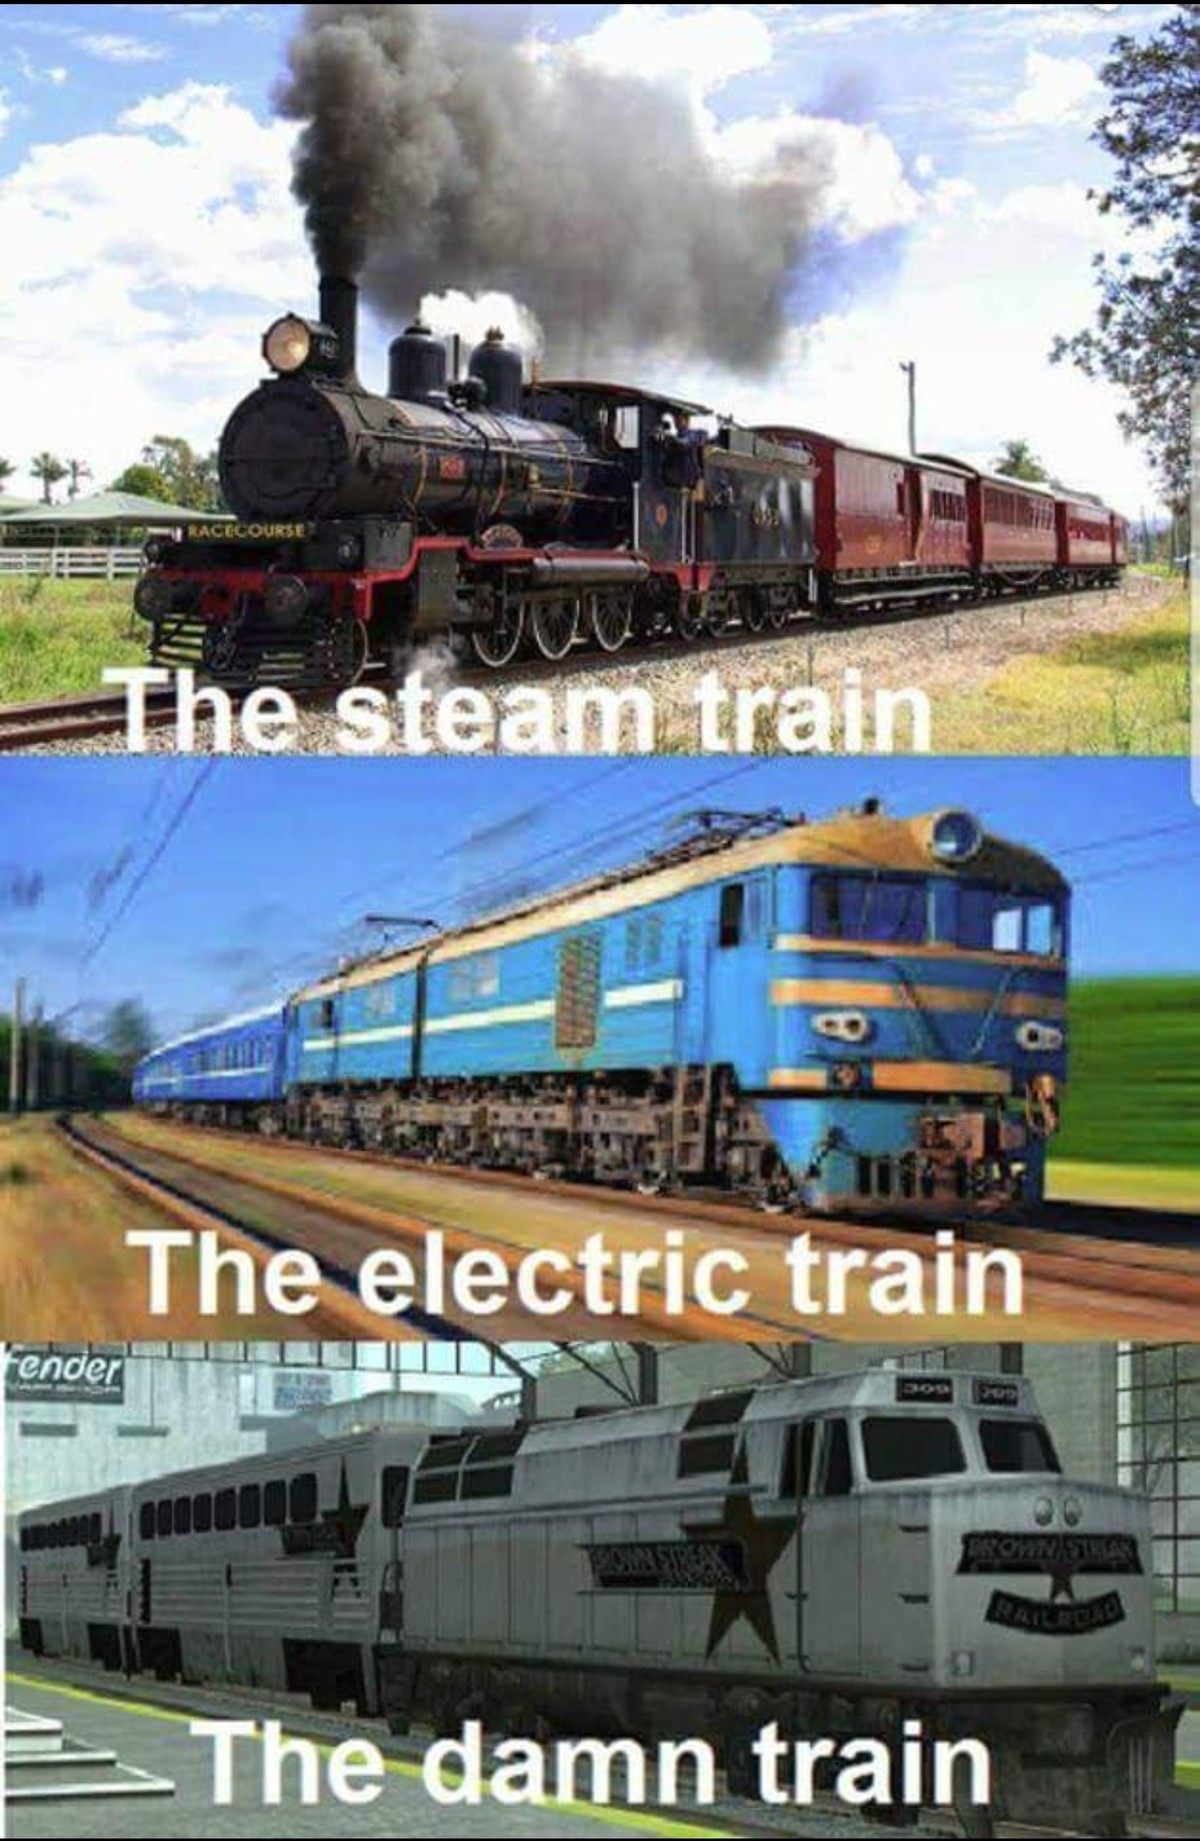 All you had to do was follow.... join list: VideoGameHumor (1703 subs)Mention Clicks: 607707Msgs Sent: 5982060Mention History. The train. THE COLE TRAIN BABY!